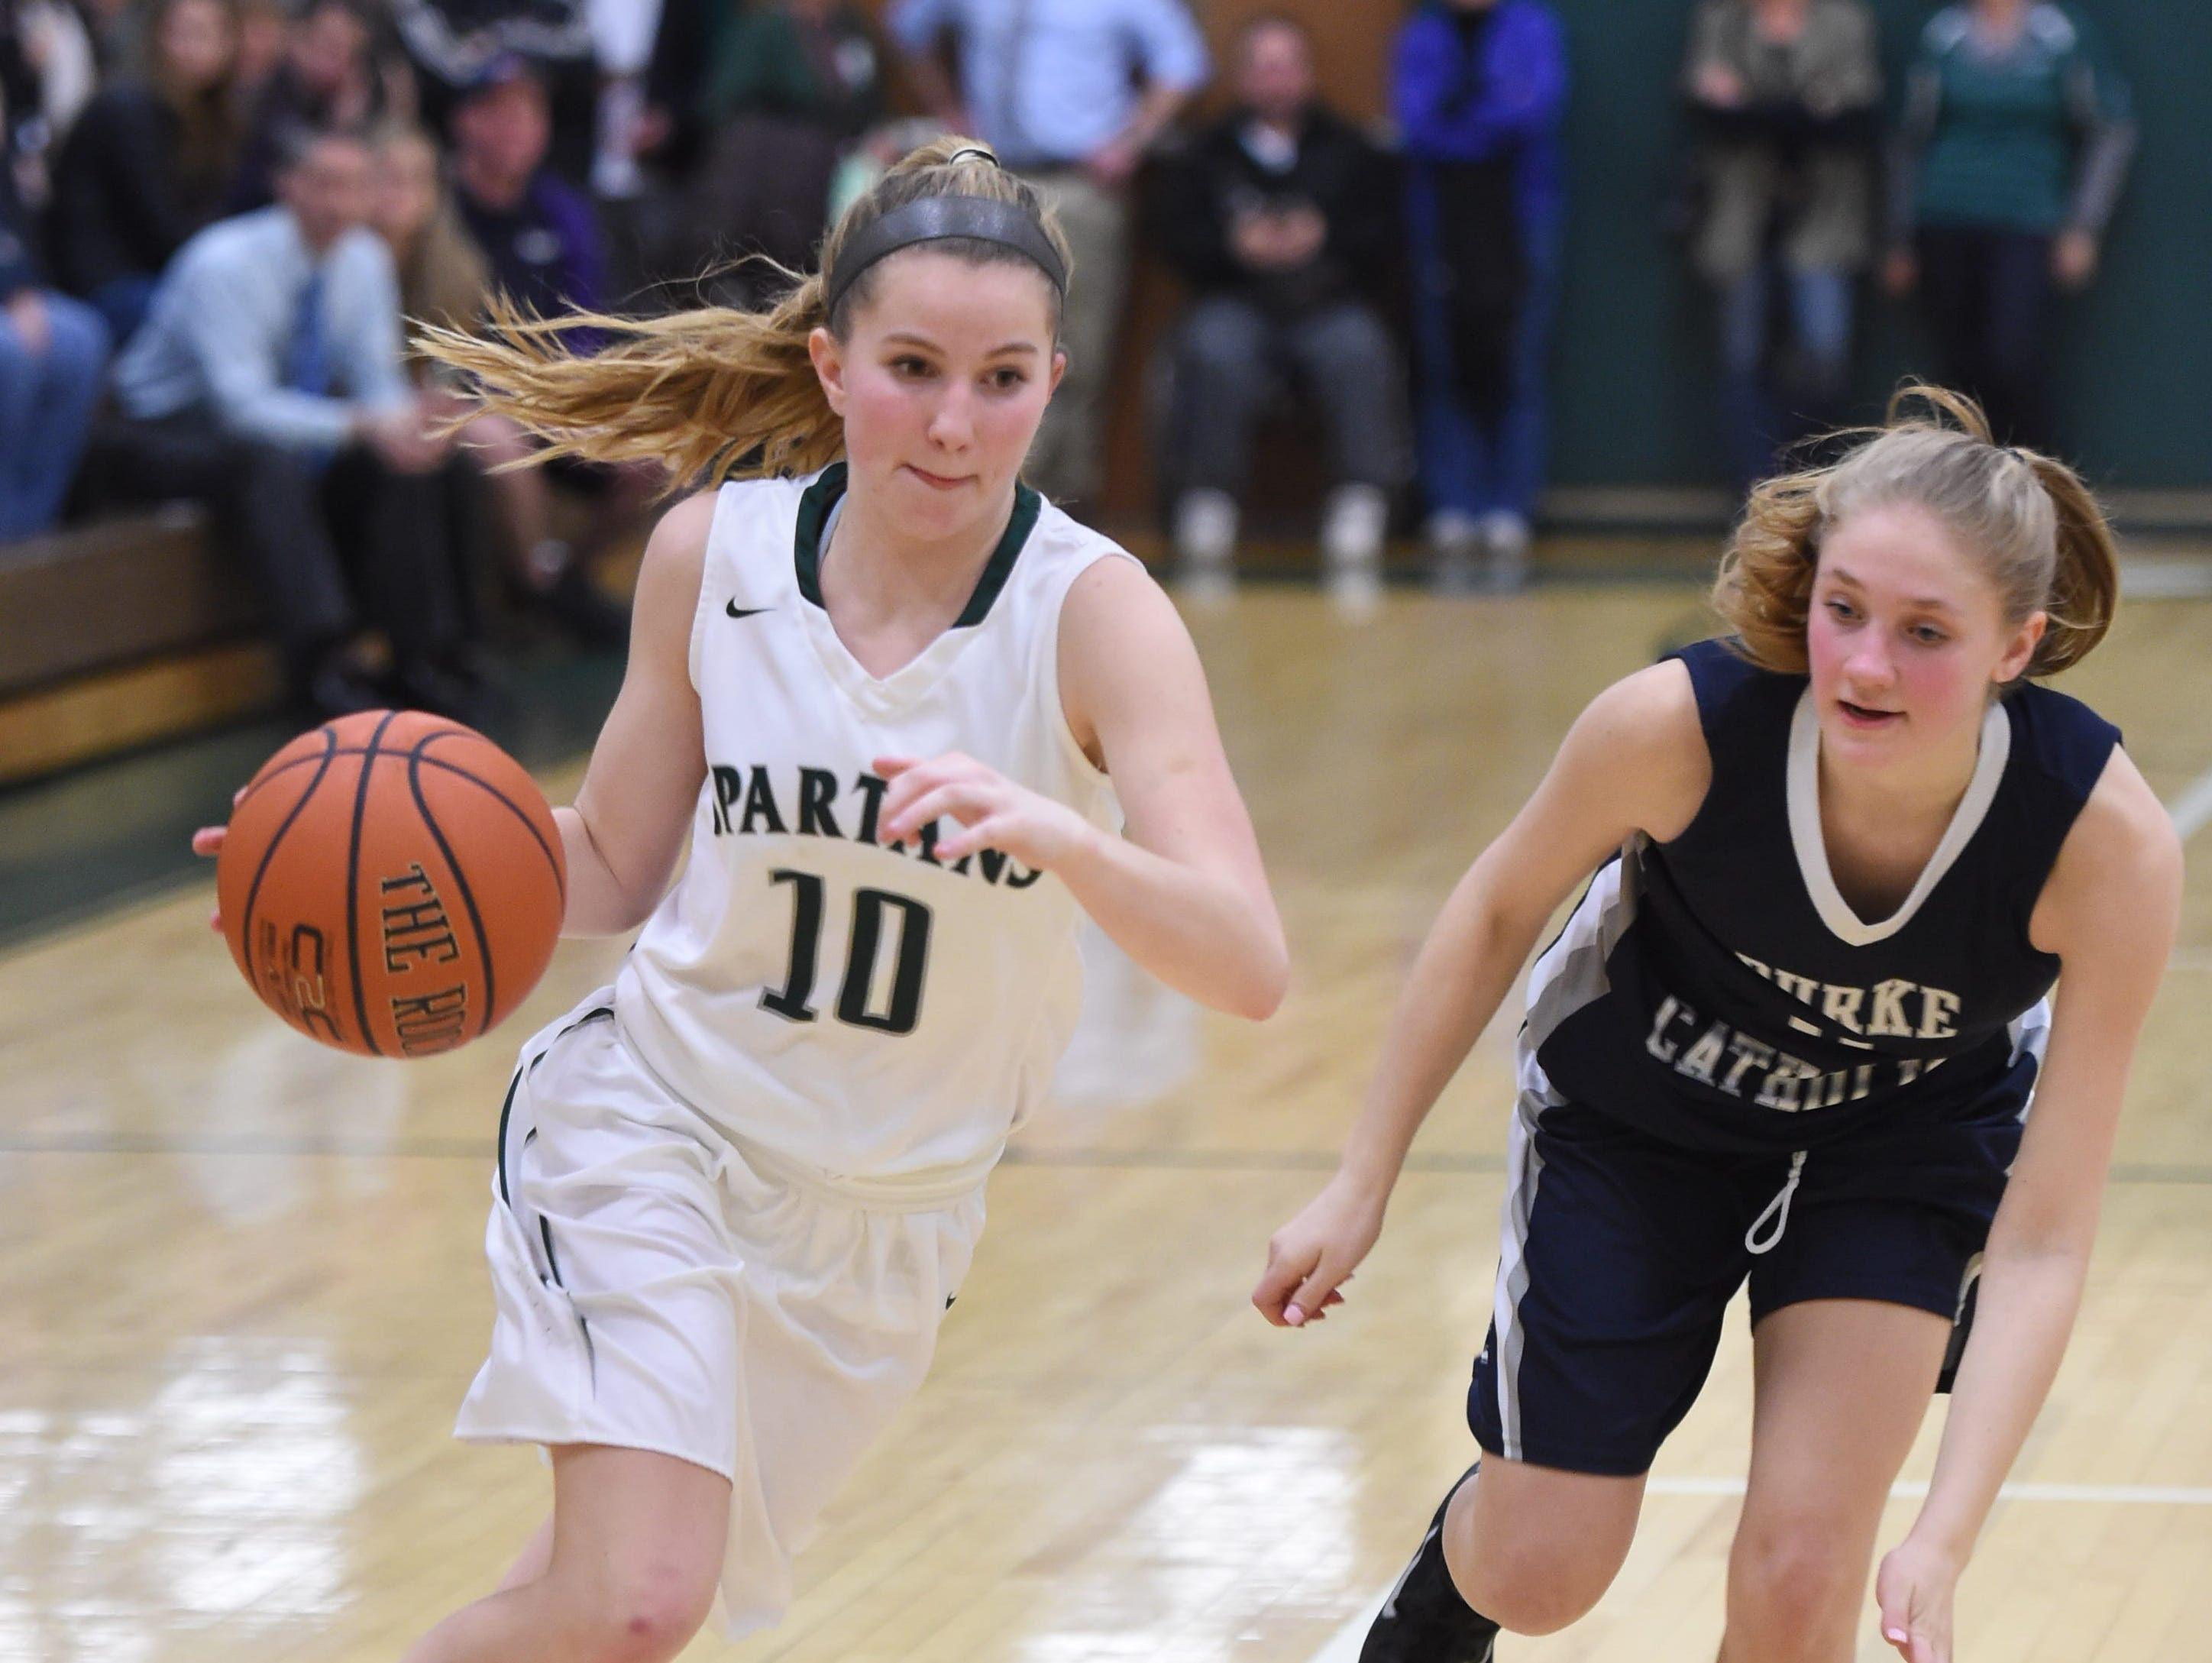 Spackenkill's Katherine Lillis dribbles past Burke's Mary Costa during Friday's Section 9 Class B semi-final at Spackenkill.